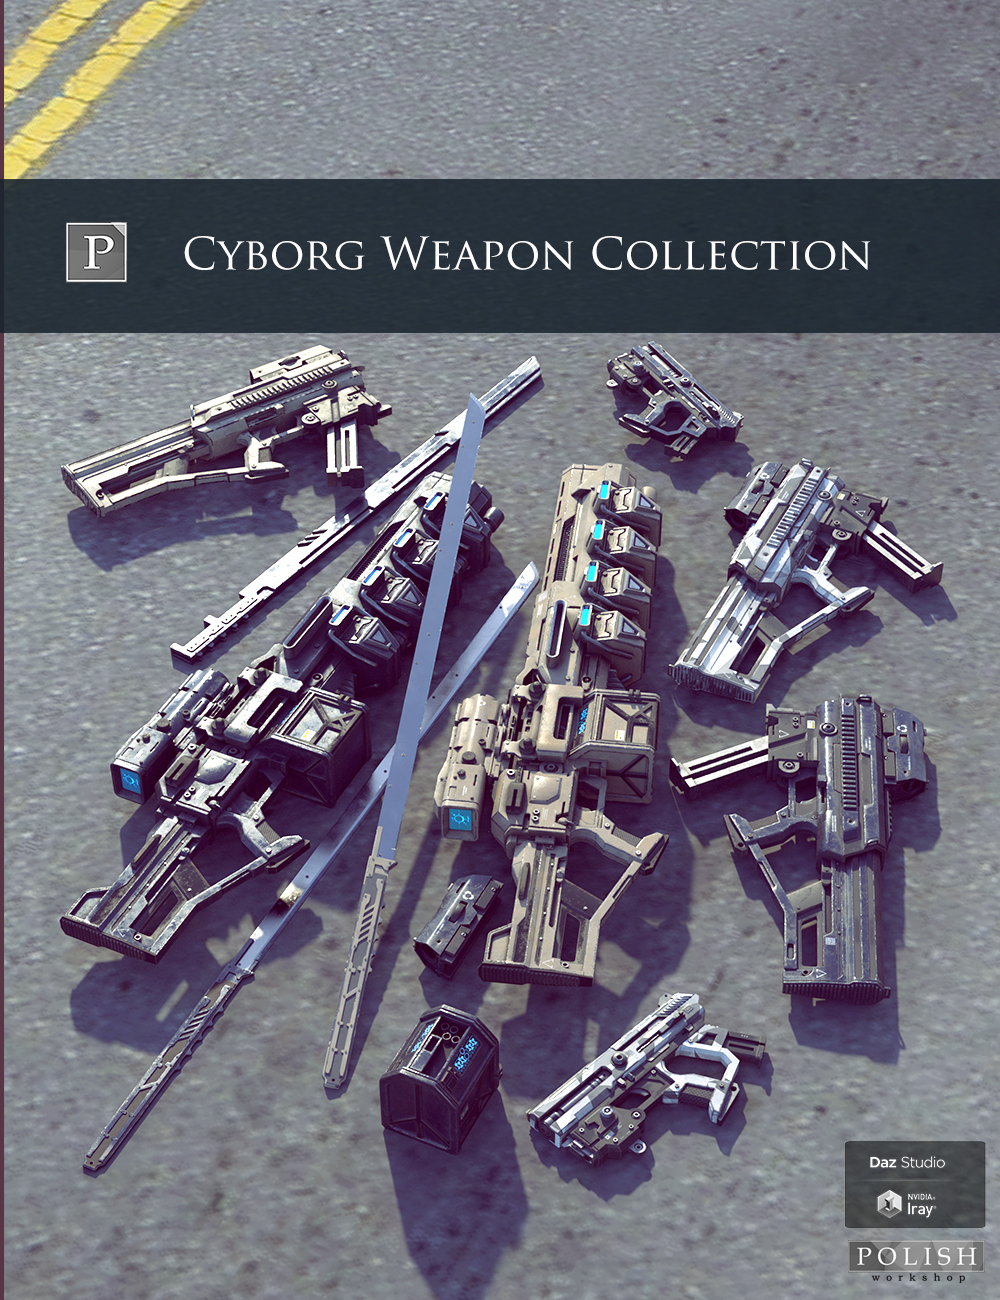 Cyborg Weapon Collection by: Polish, 3D Models by Daz 3D